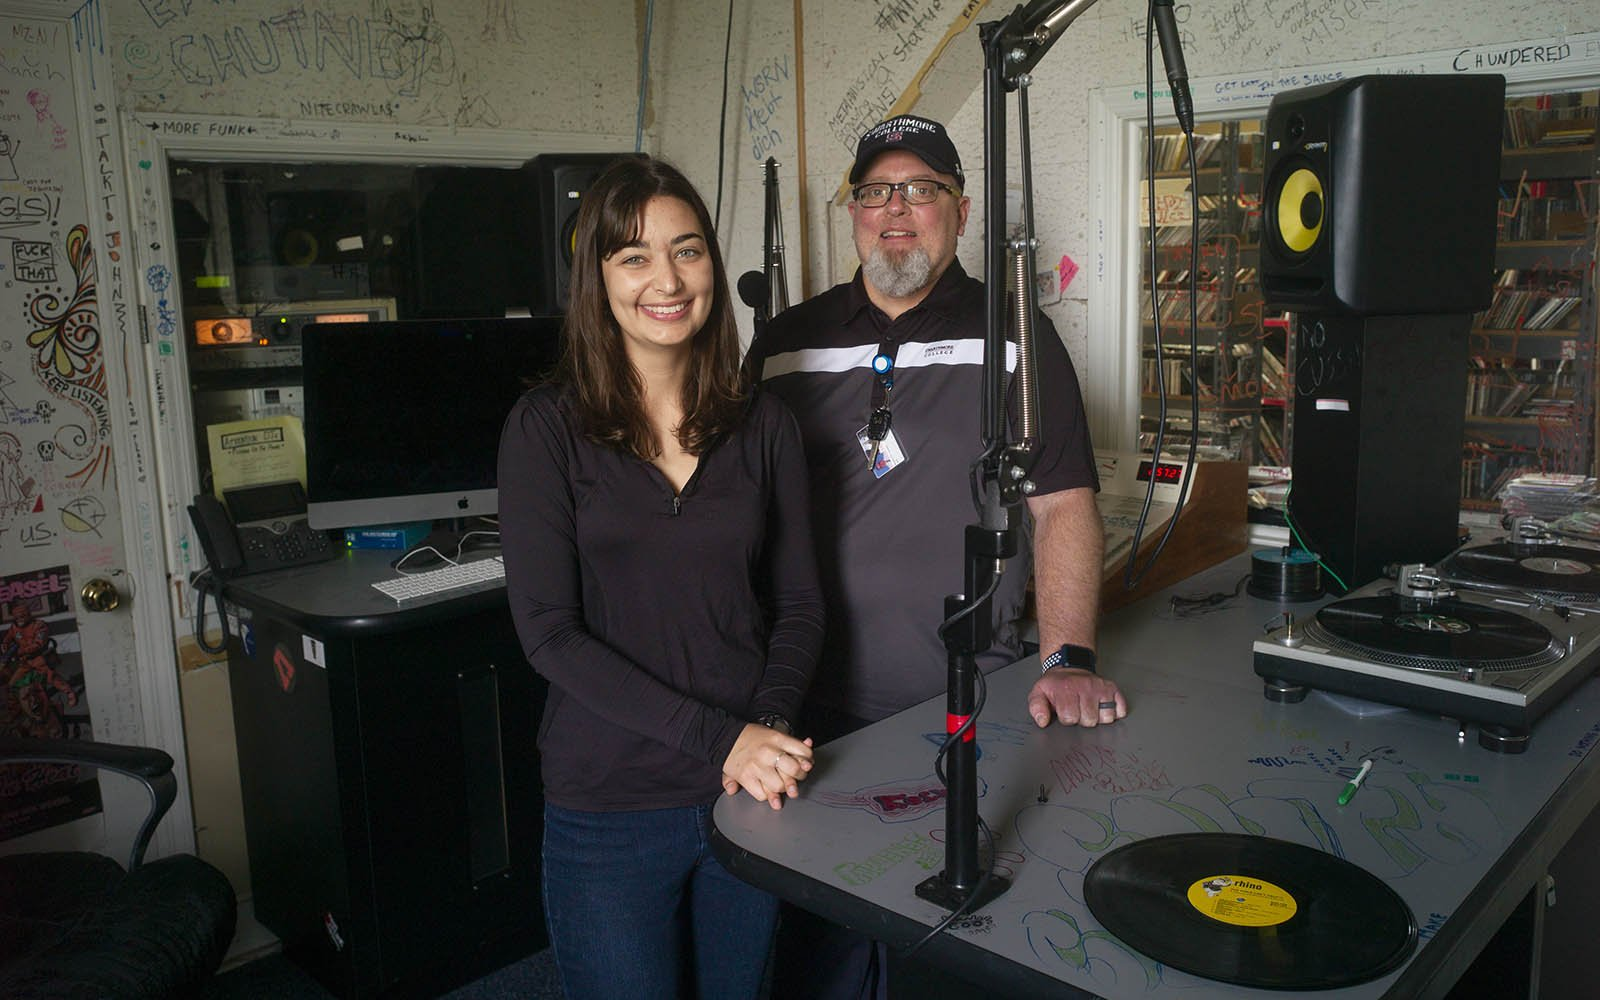 A student and staff member pose inside WSRN radio station